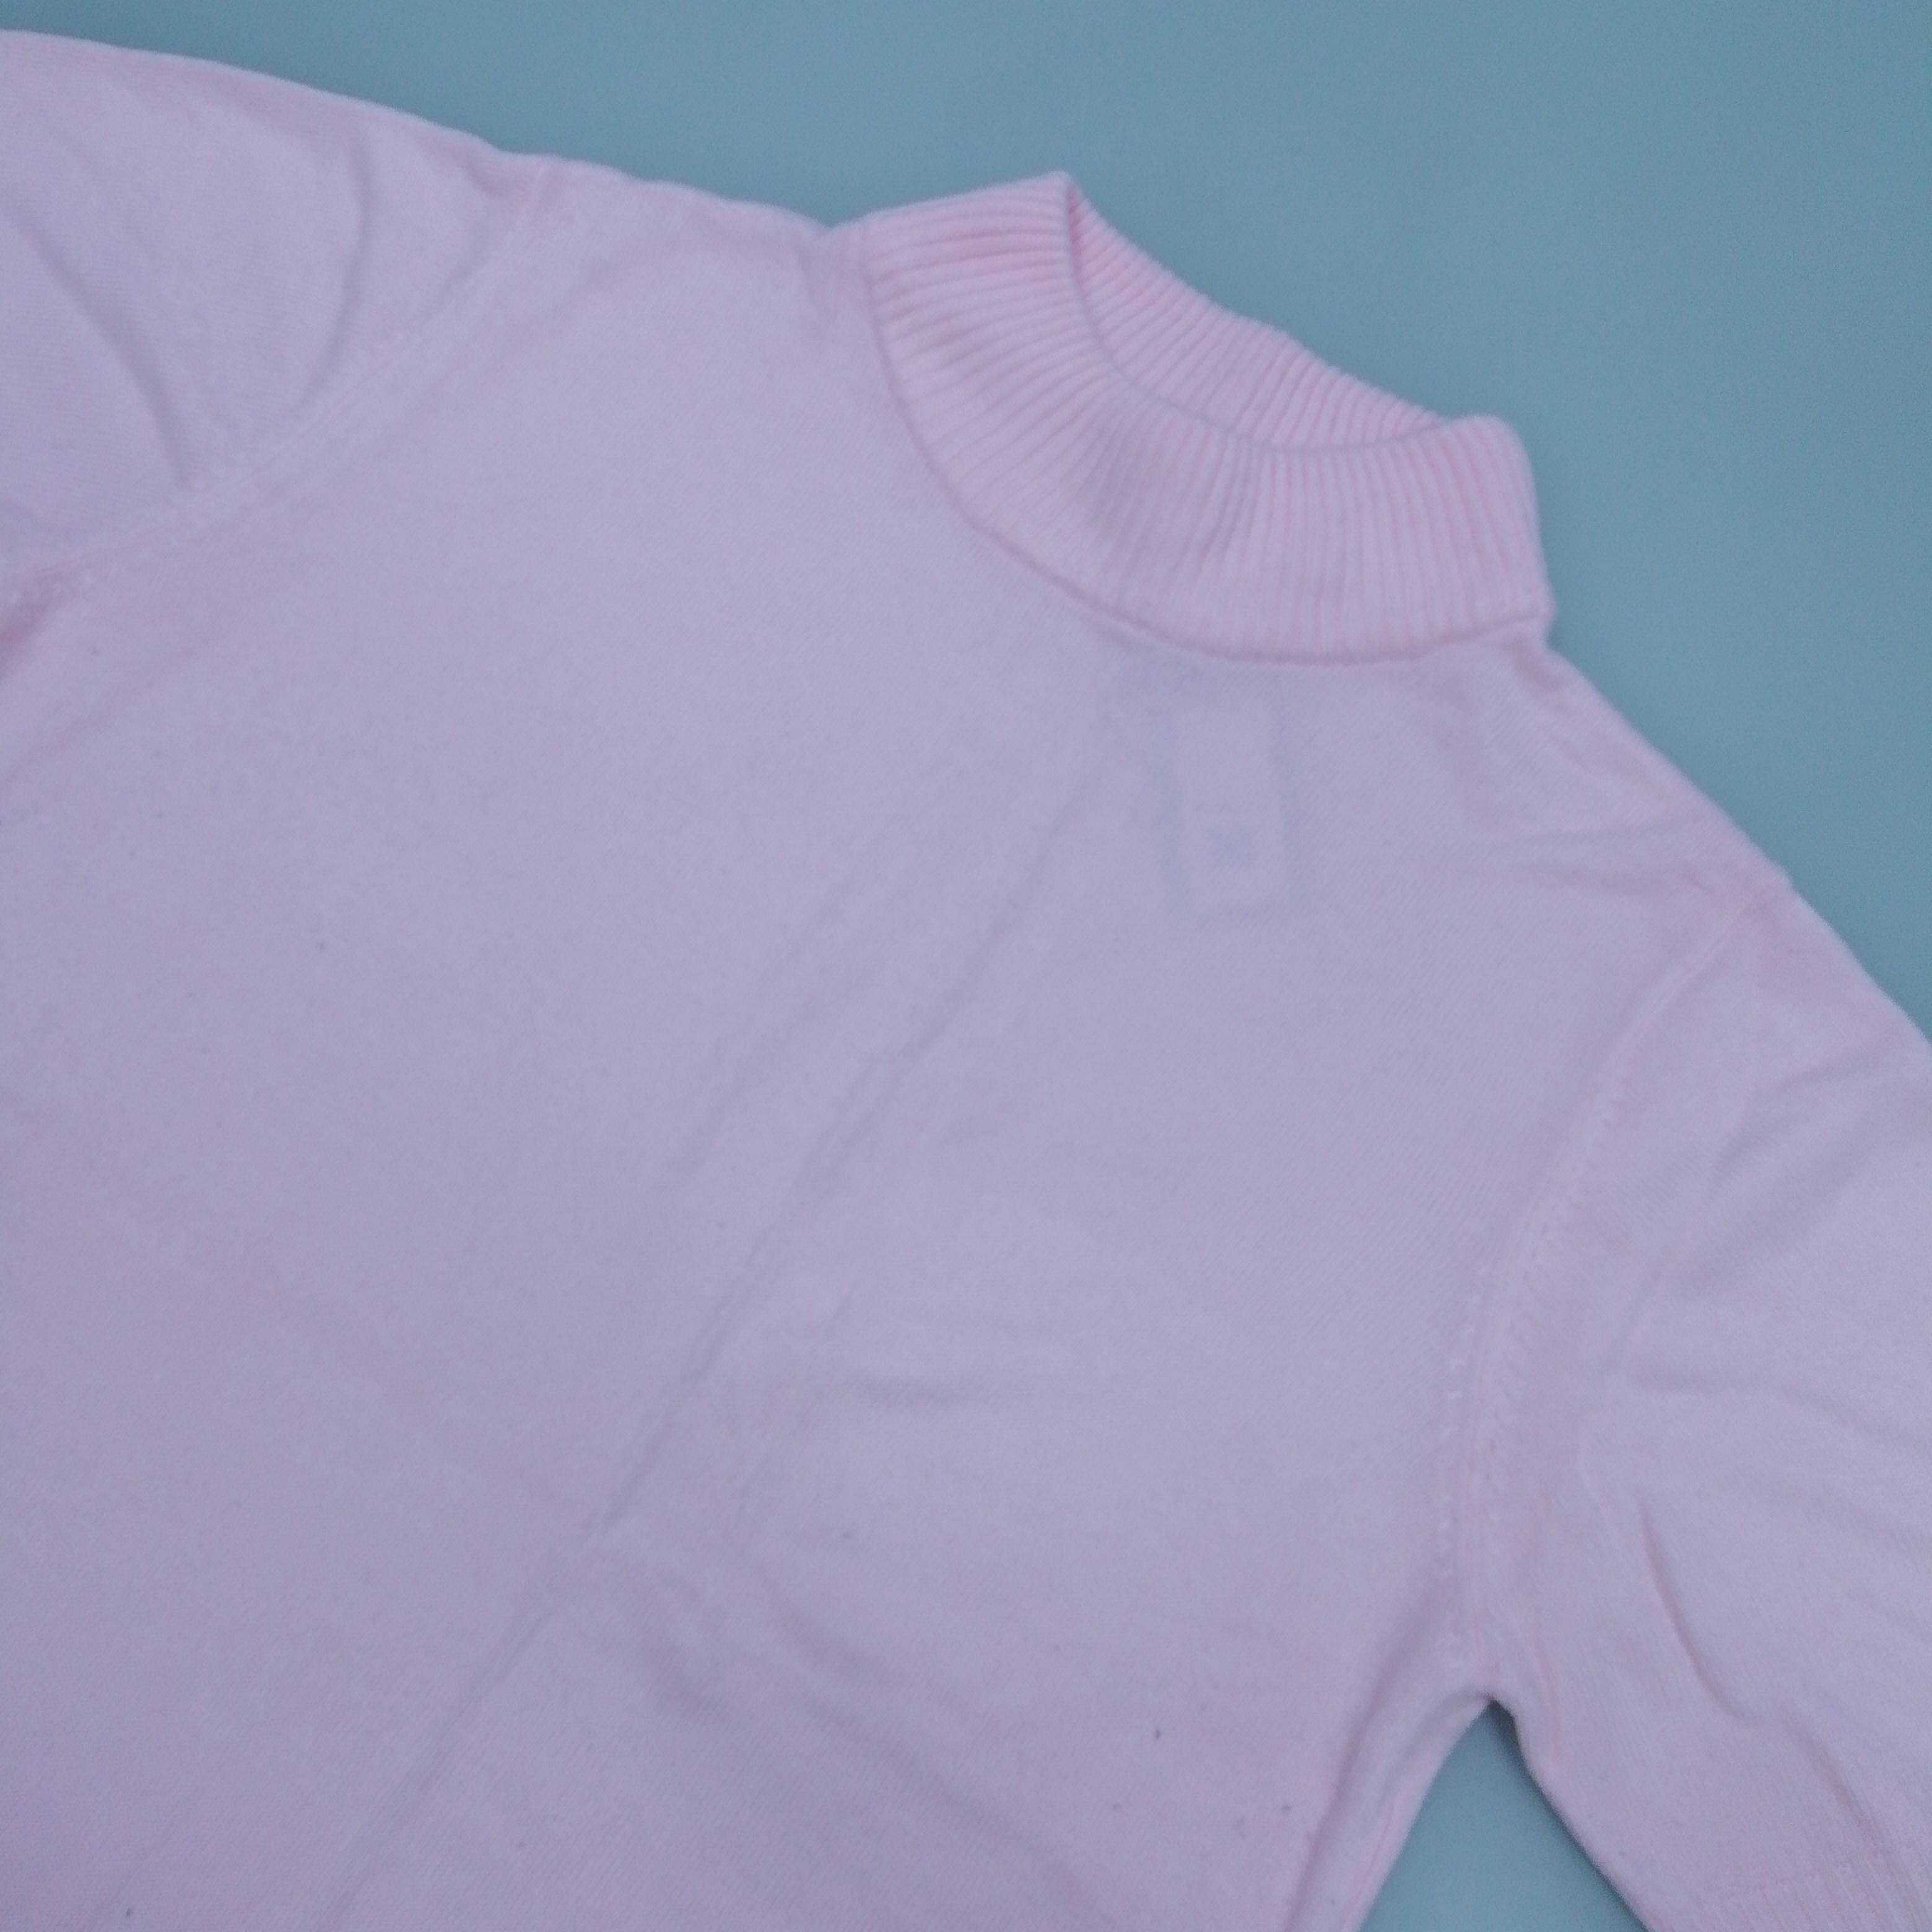 Damart Women's Short Sleeve Top 14 Colour: Pink